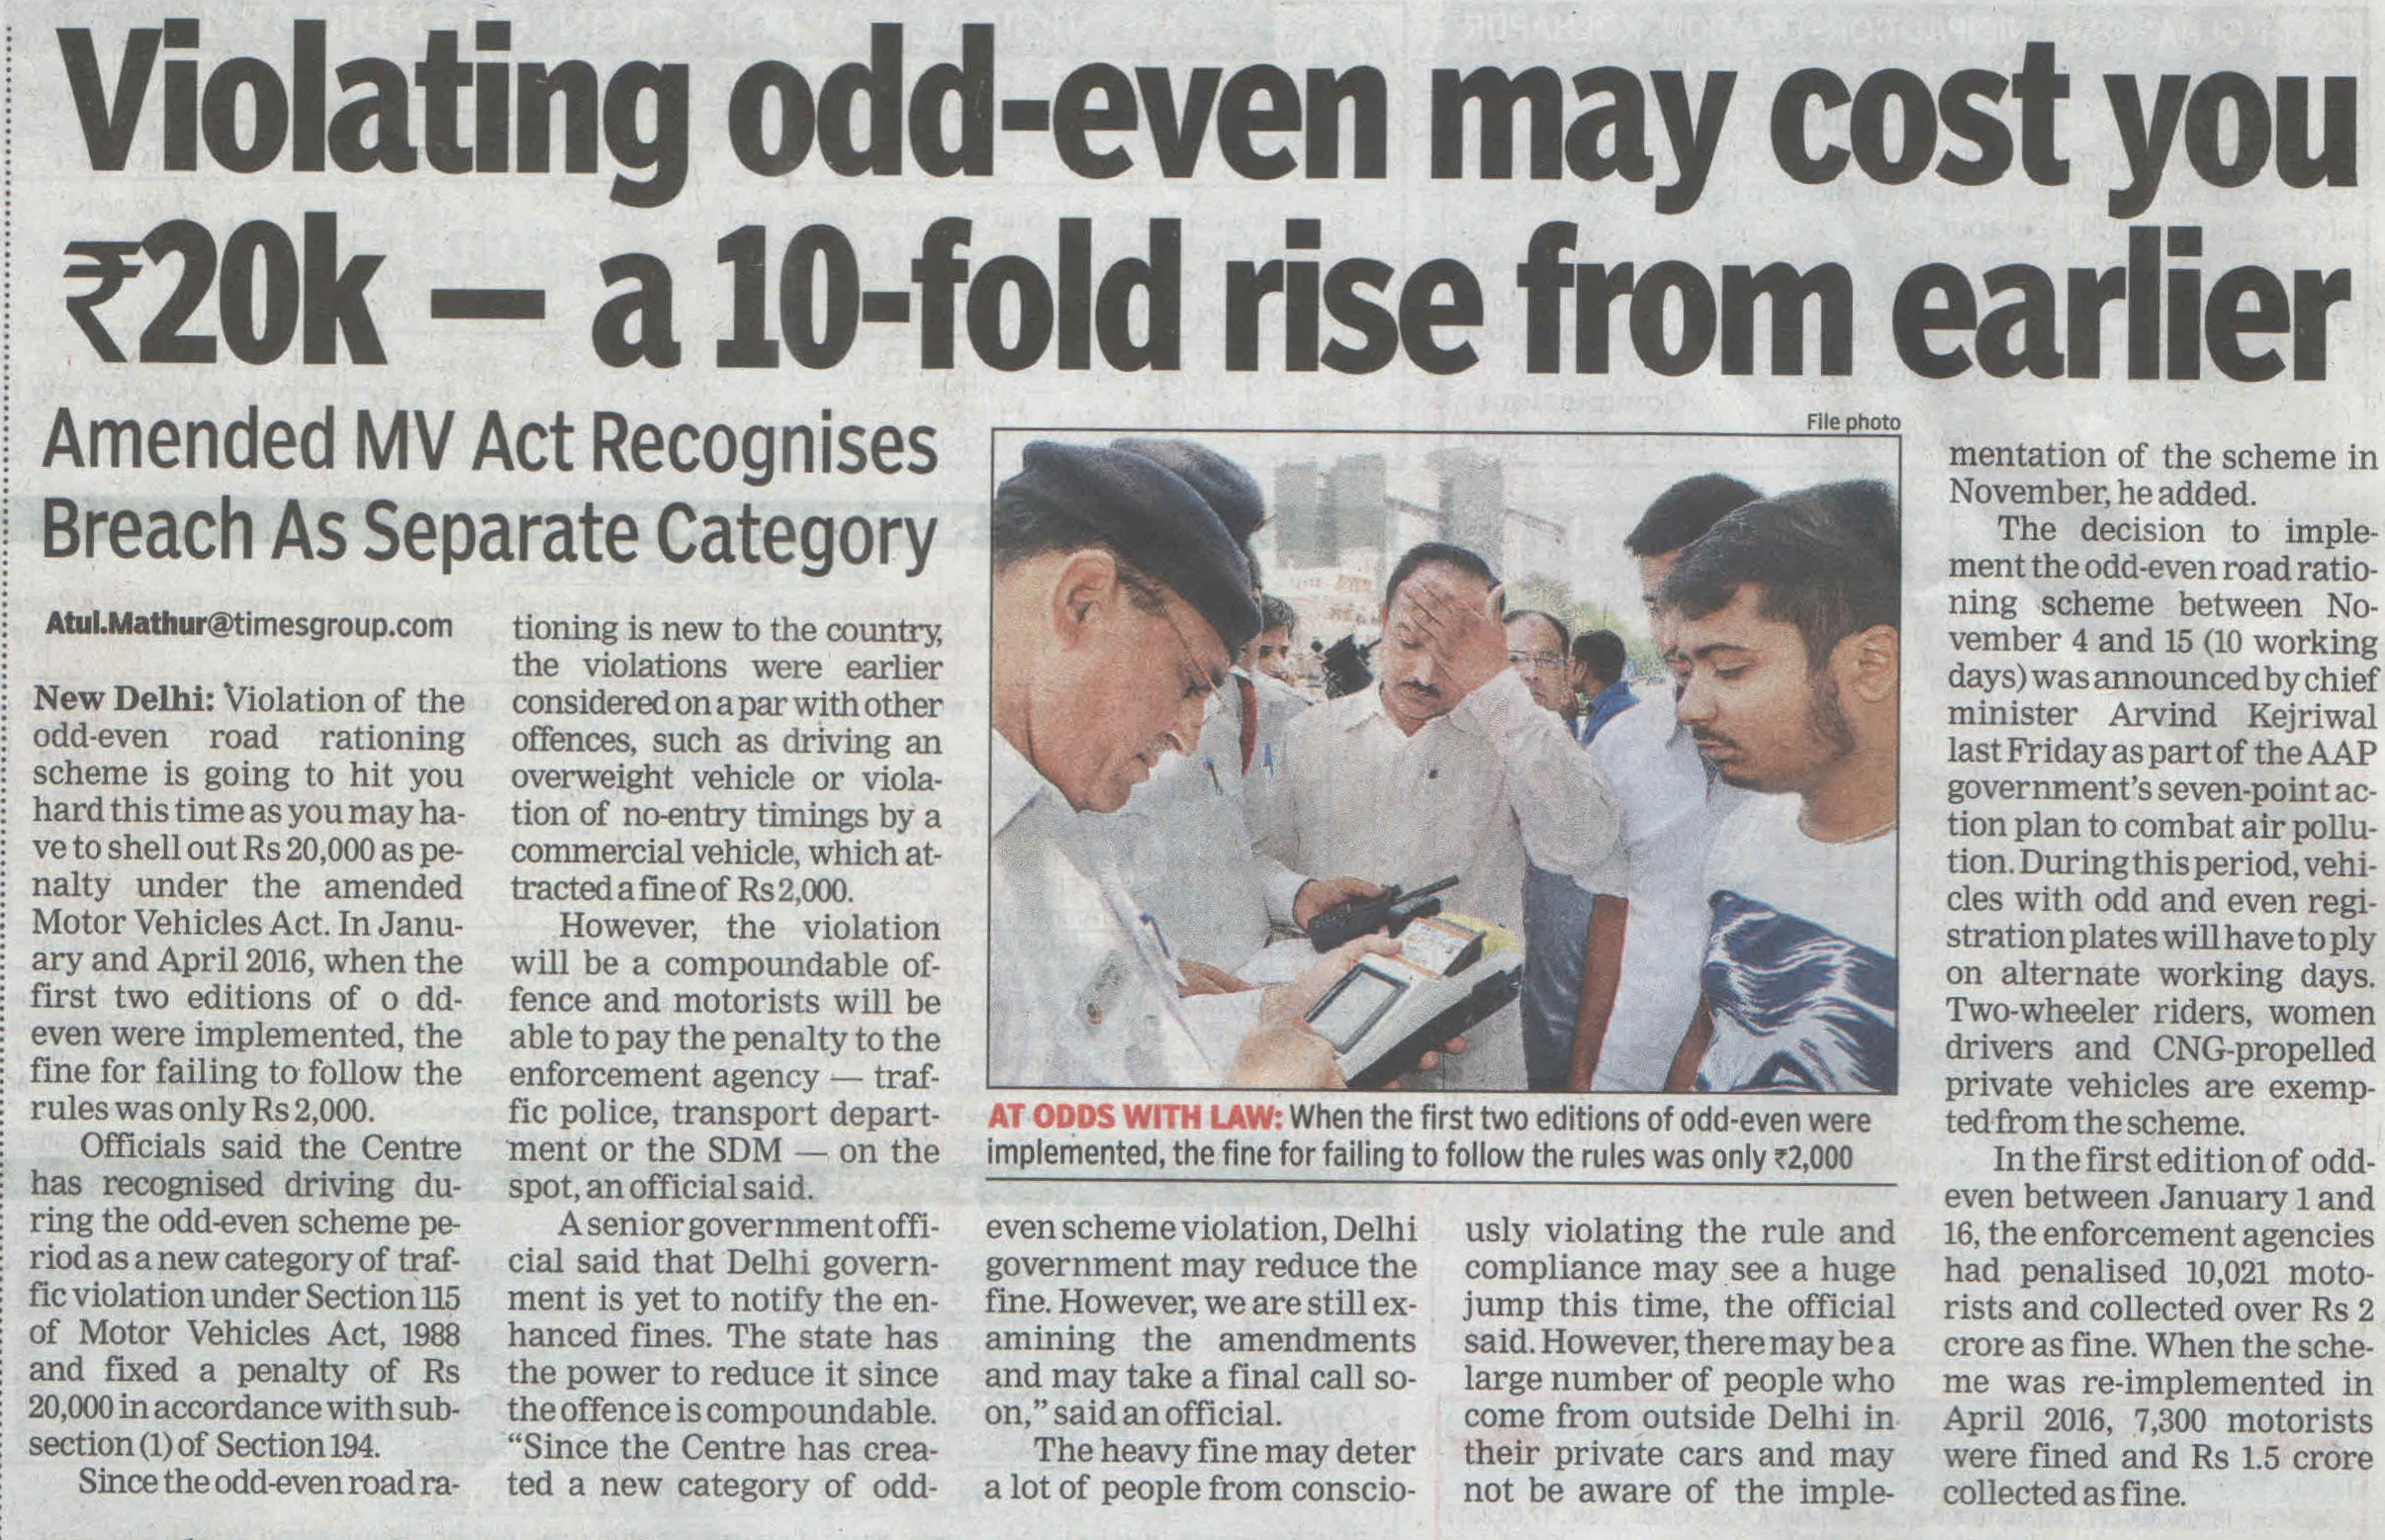 Violating odd-even may cost you Rs. 20K-a 10 fold rise from earleir